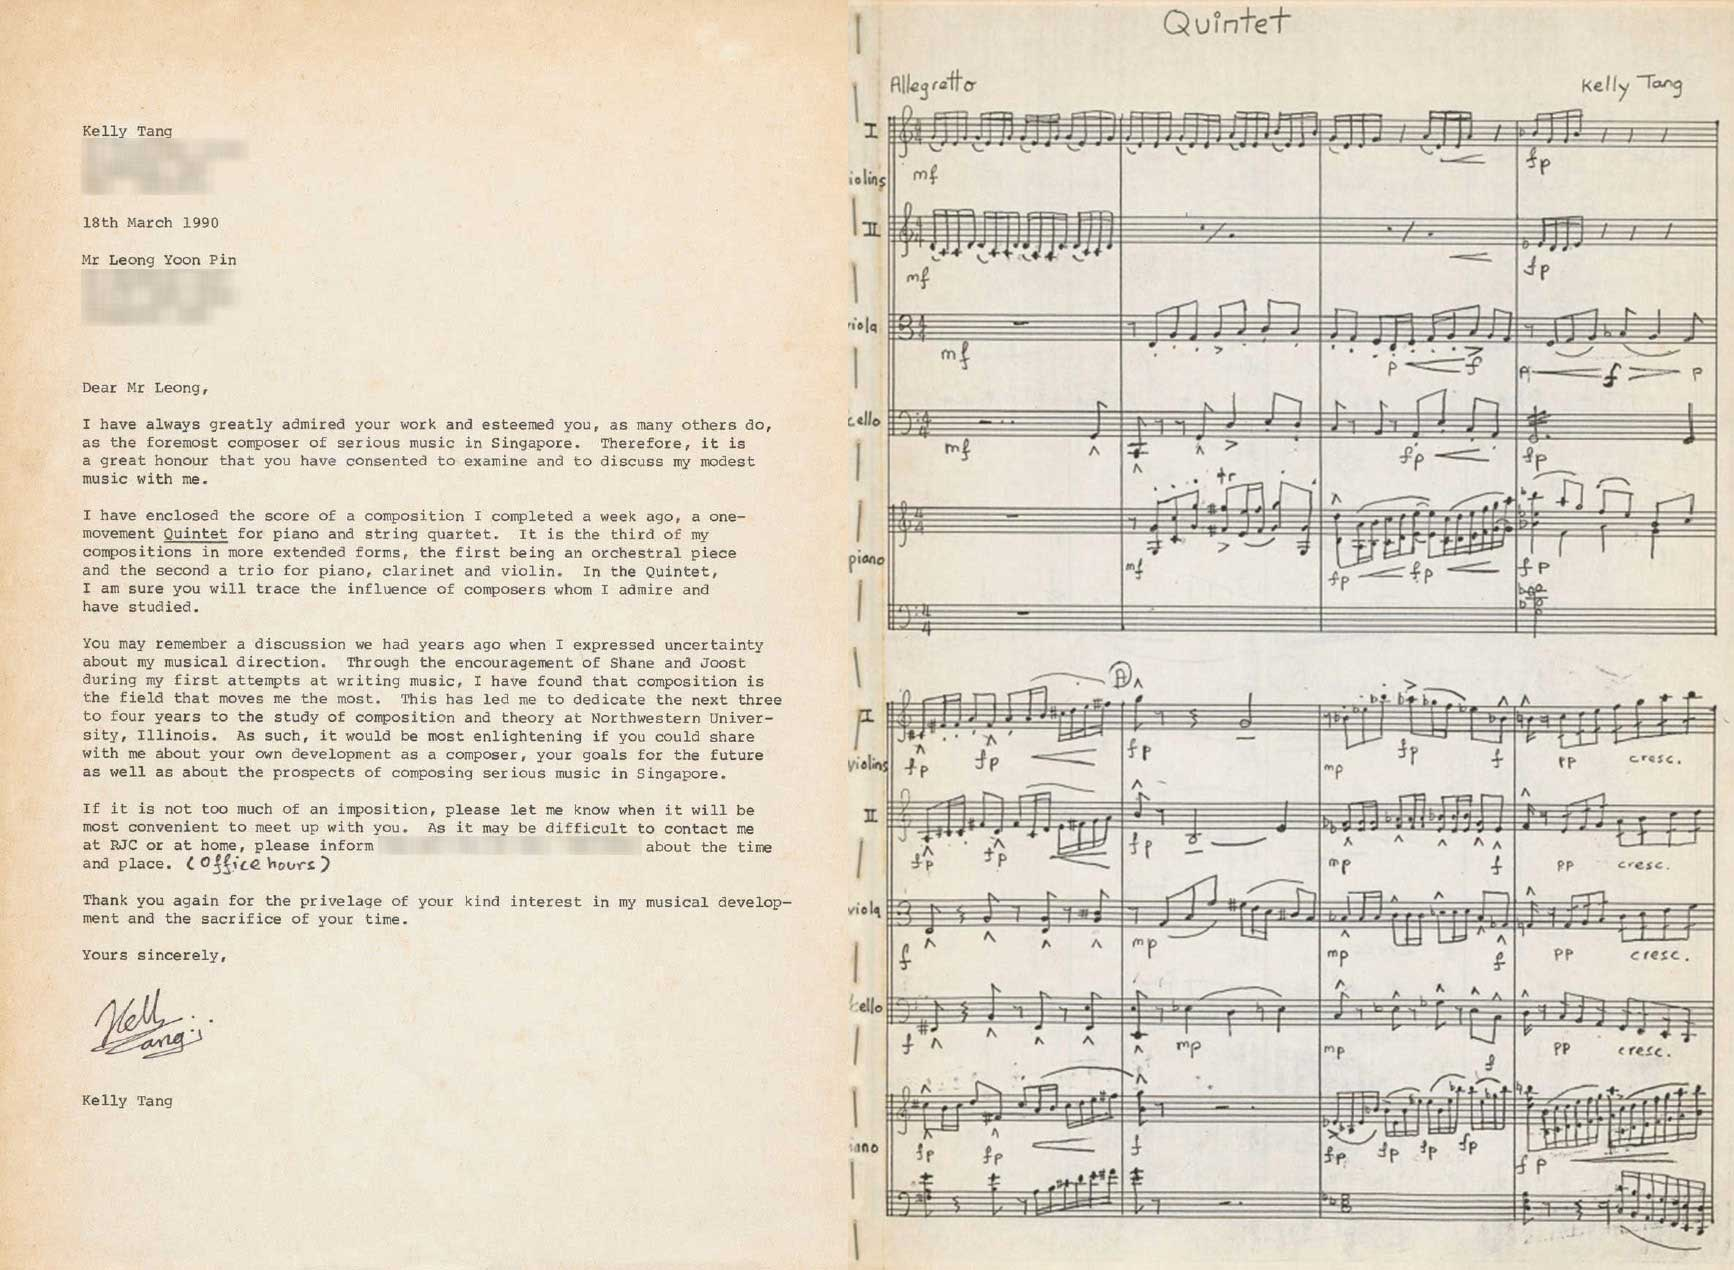 Letter to Leong Yoon Pin, by composer Kelly Tang